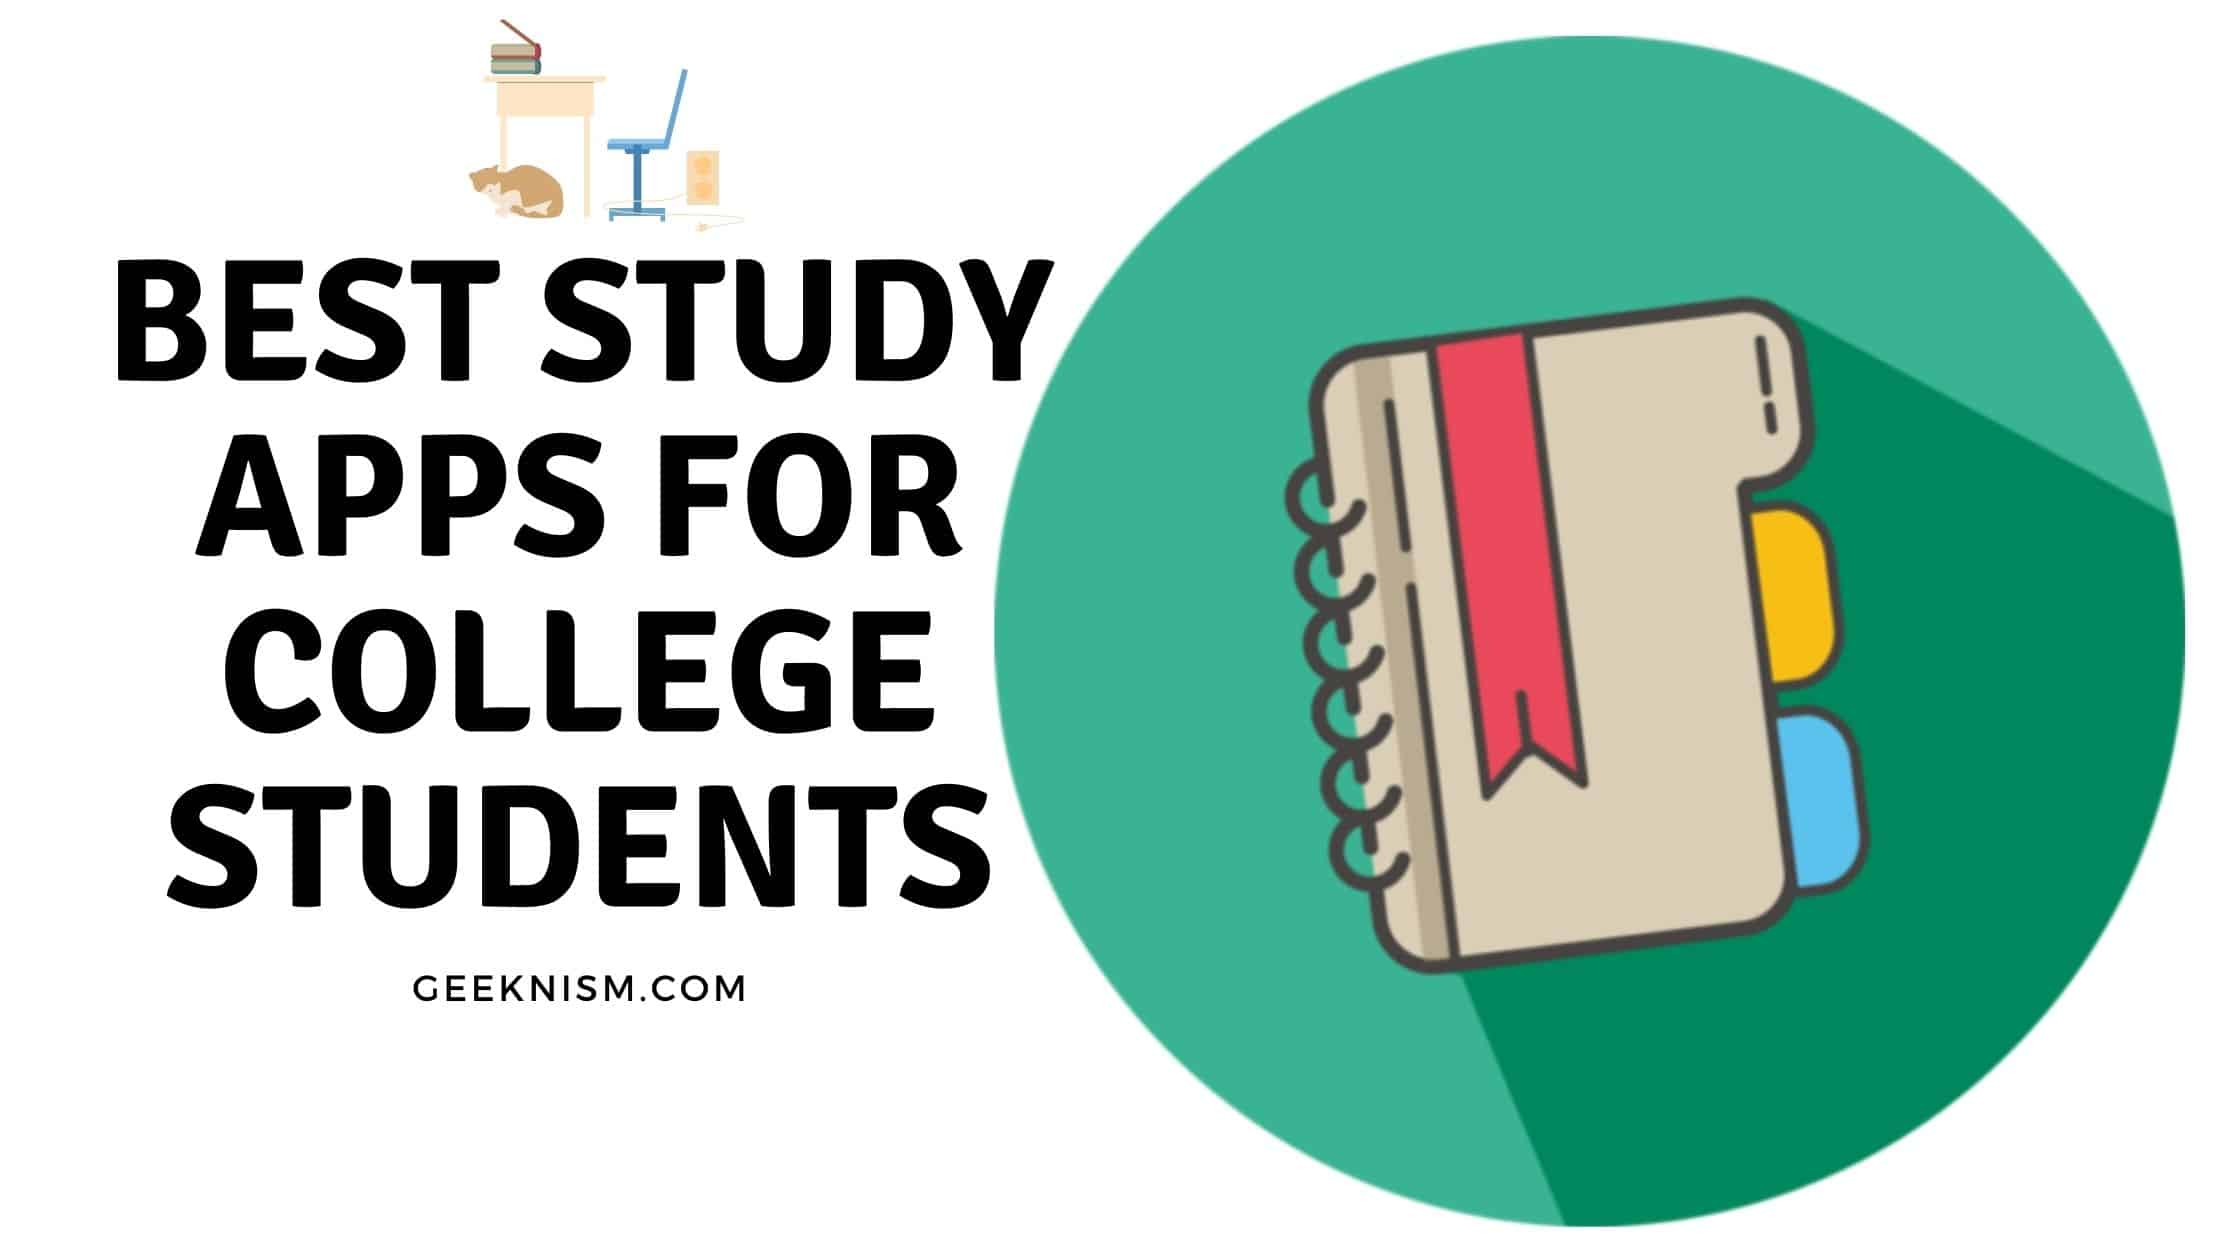 Best Study Apps for College Students